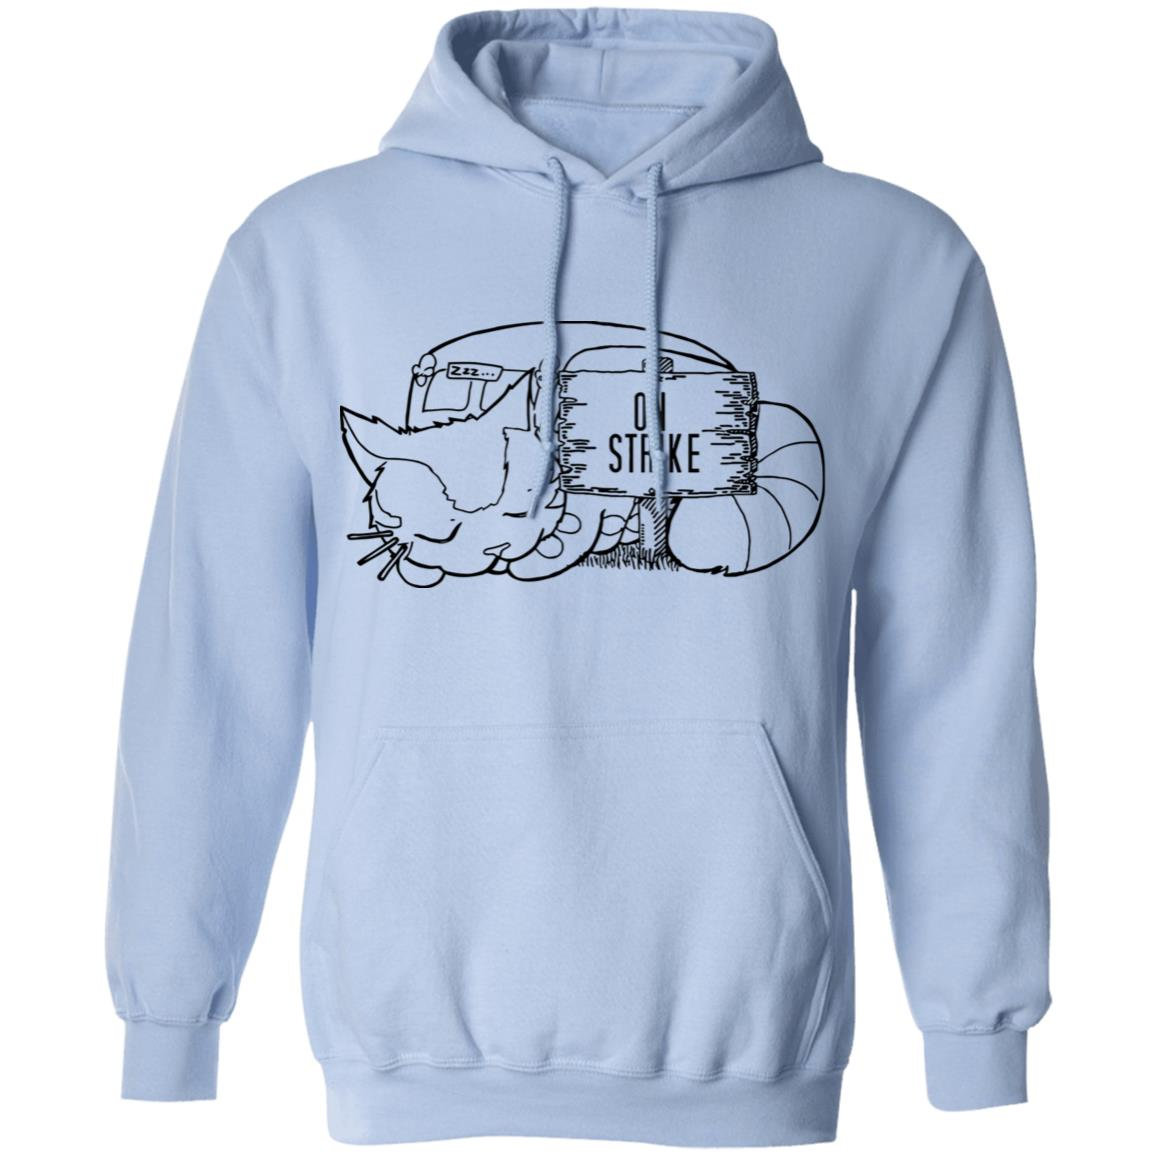 My Neighbor Totoro – CatBus on strike Hoodie